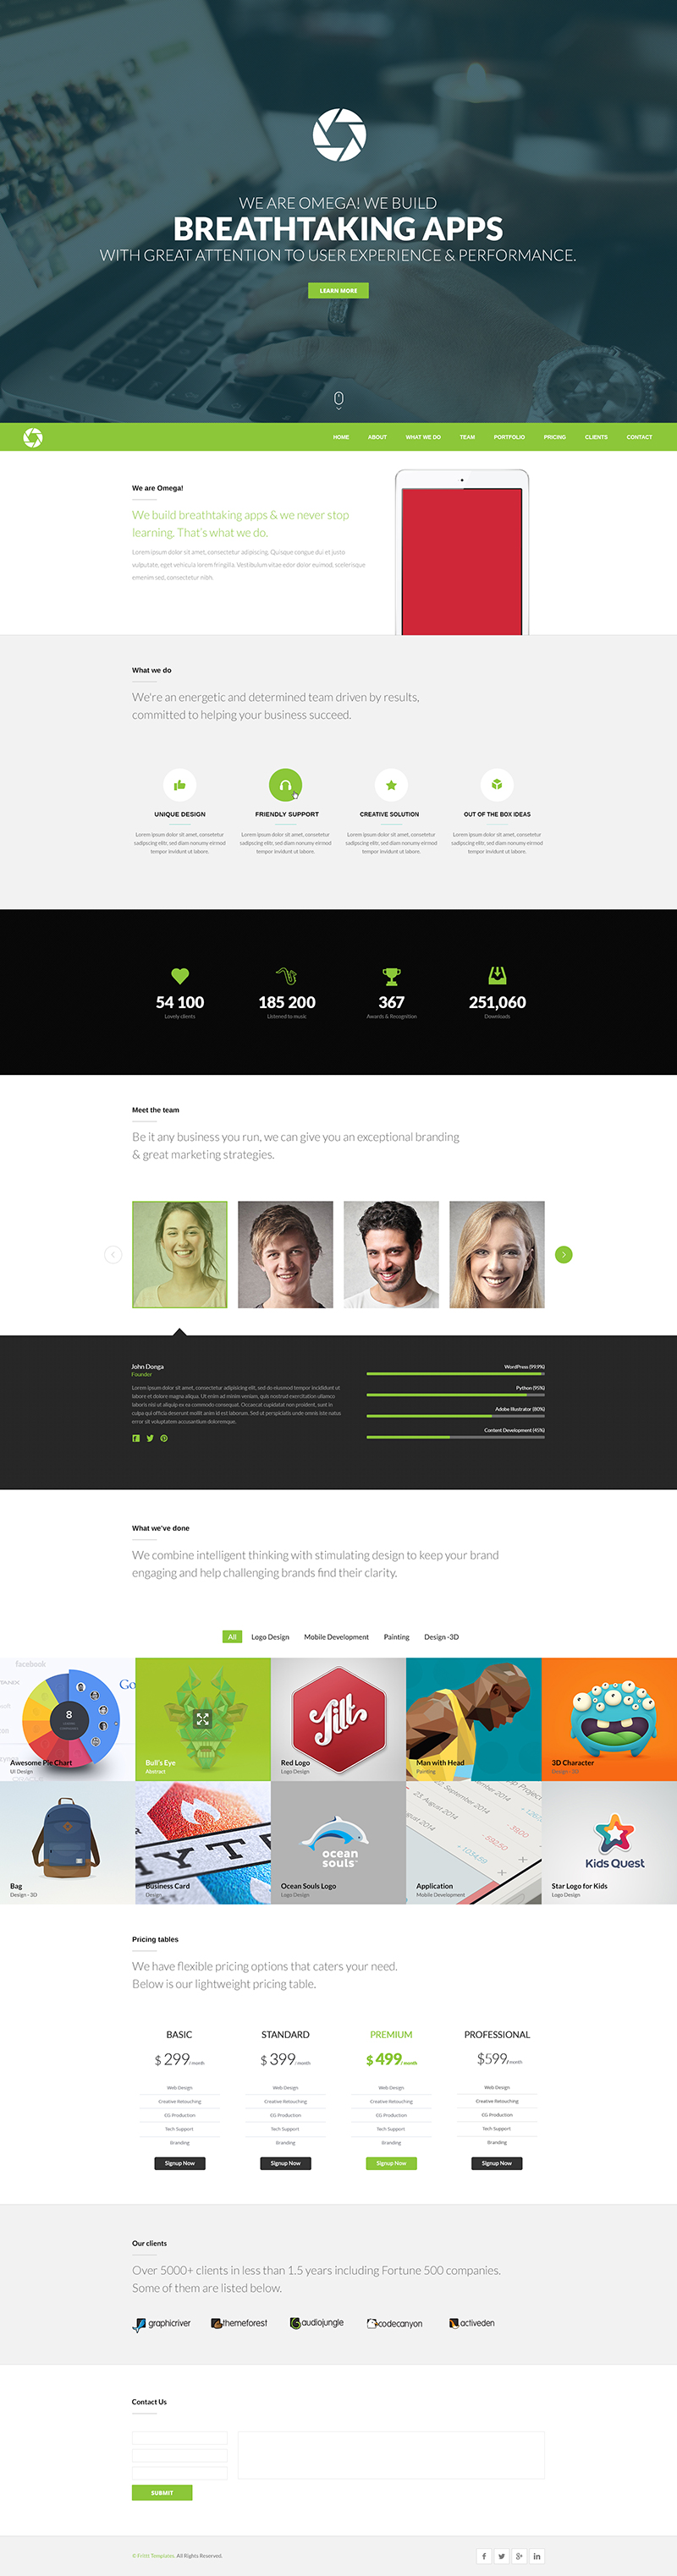 Fein Kostenlose Photoshop Web Vorlagen Ideen - Entry Level Resume ...